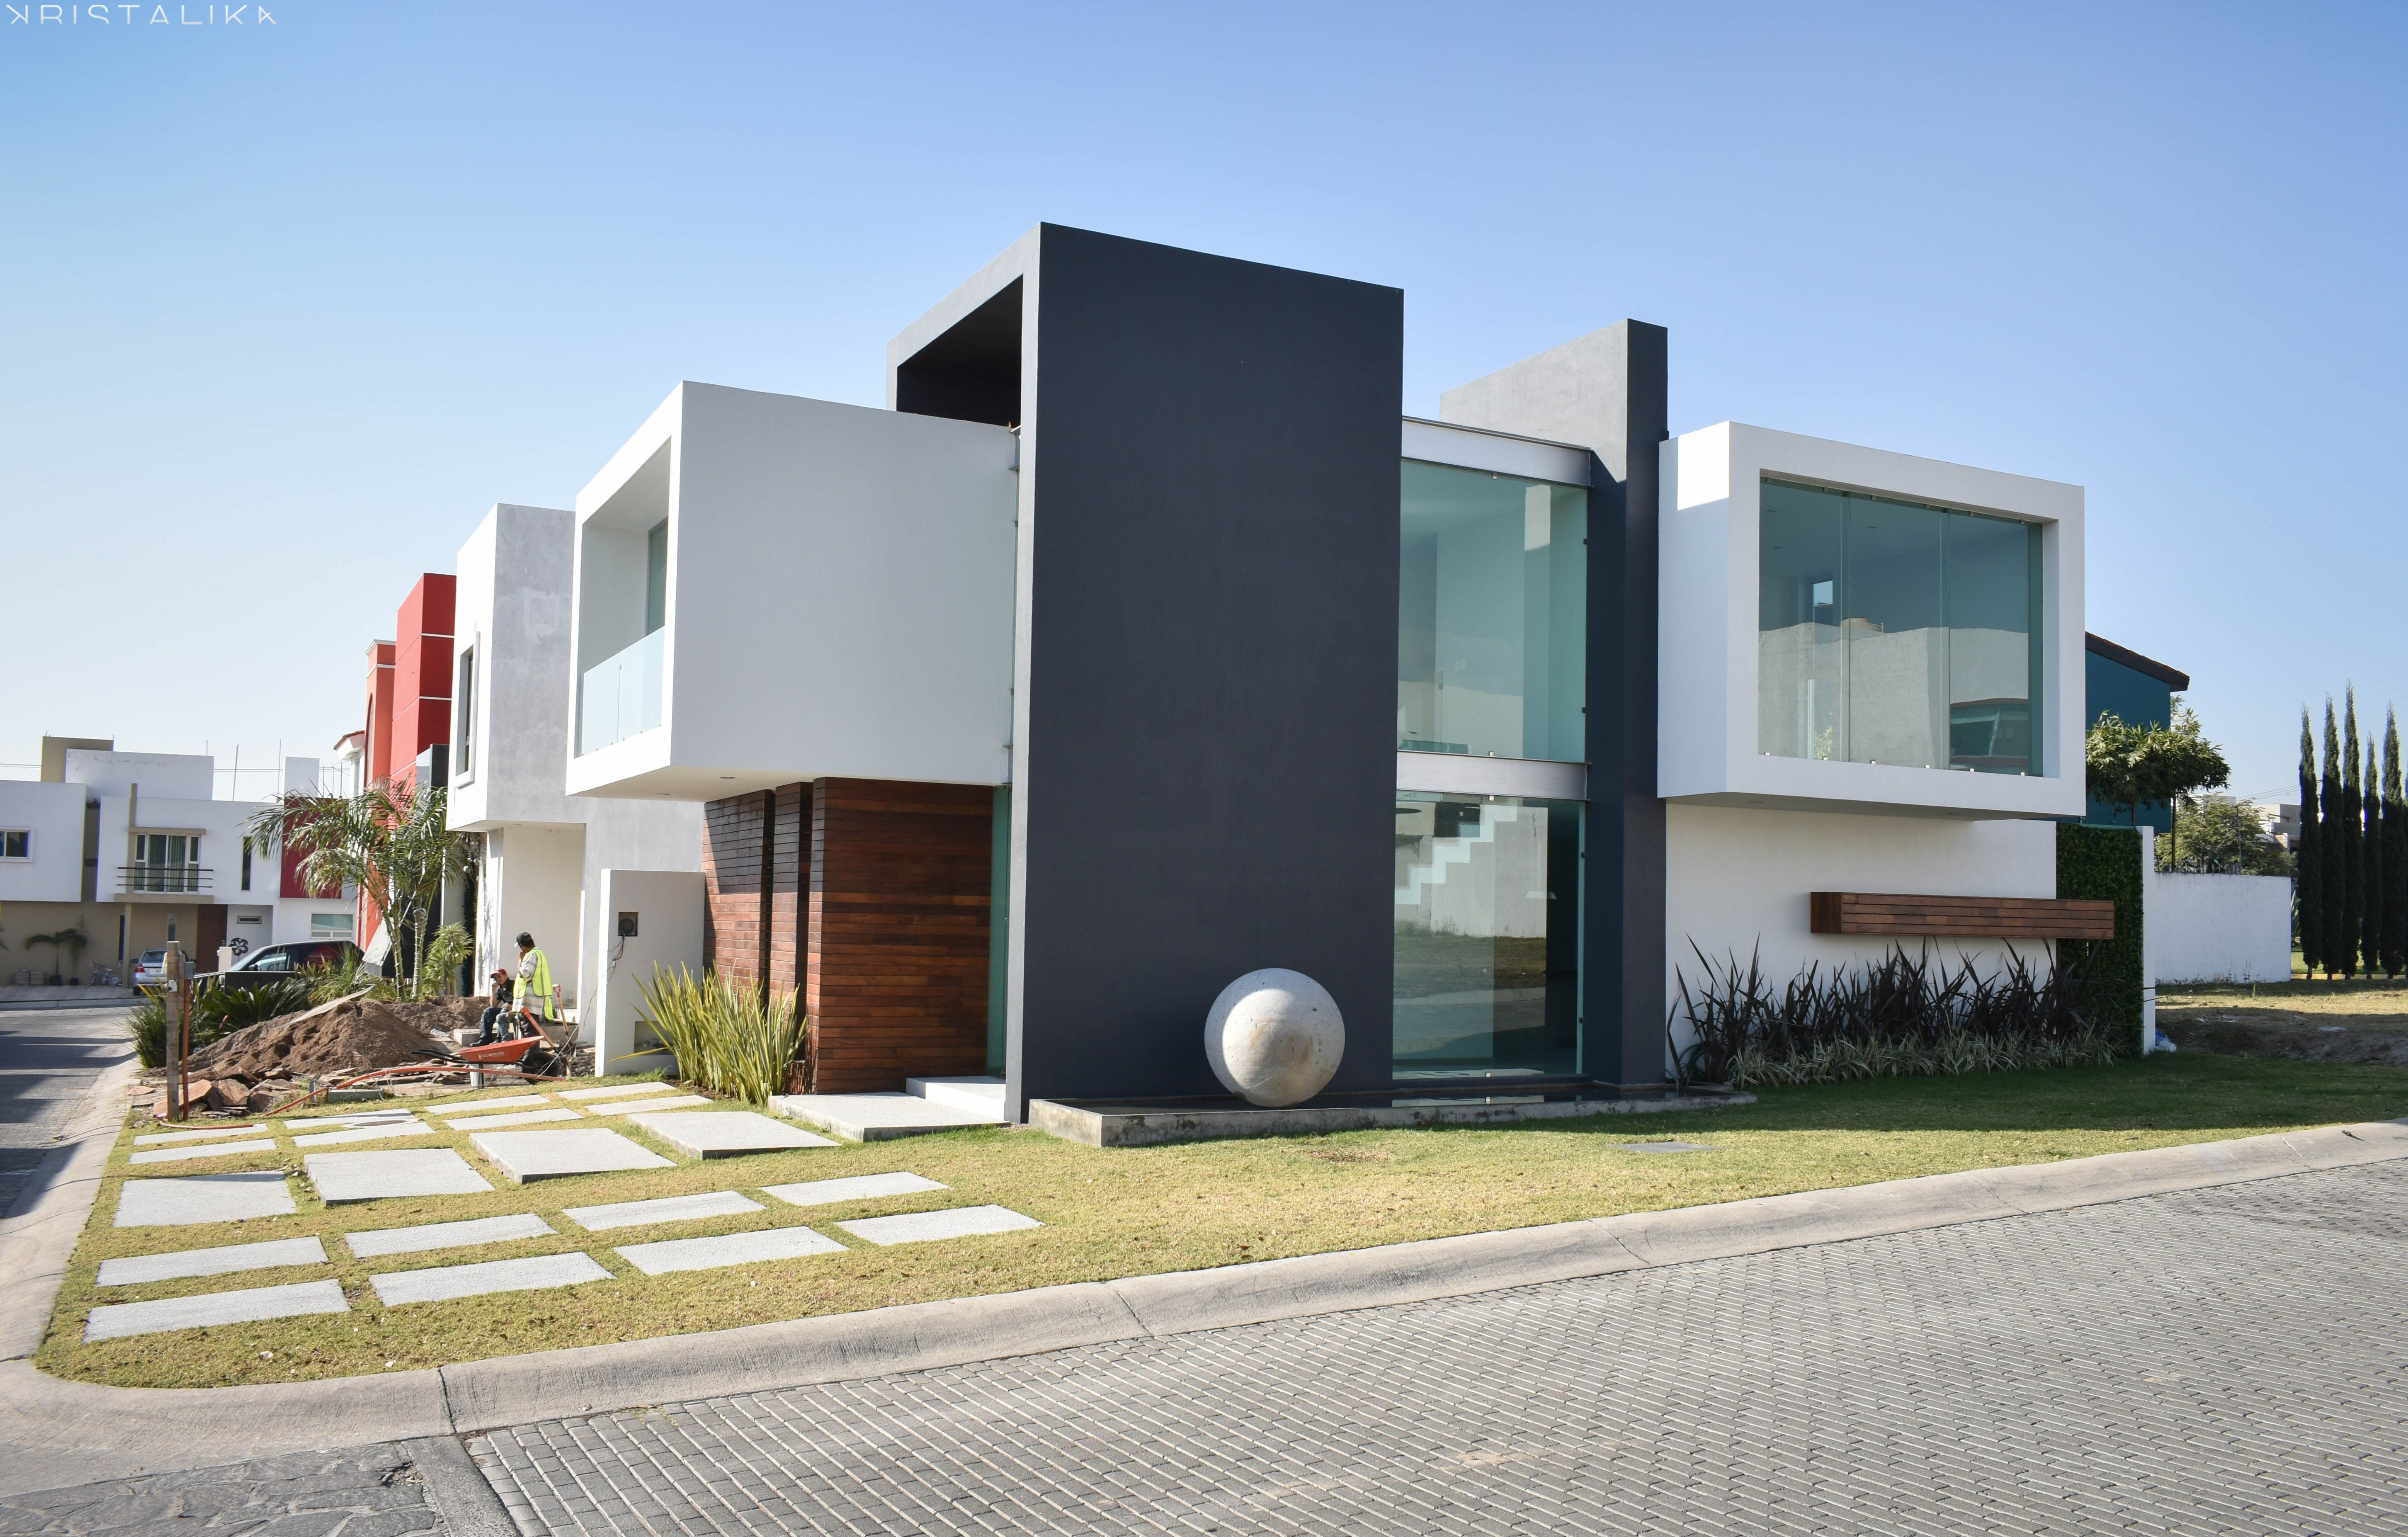 Cf house great pin for oahu architectural design visit - Casas arquitectura moderna ...